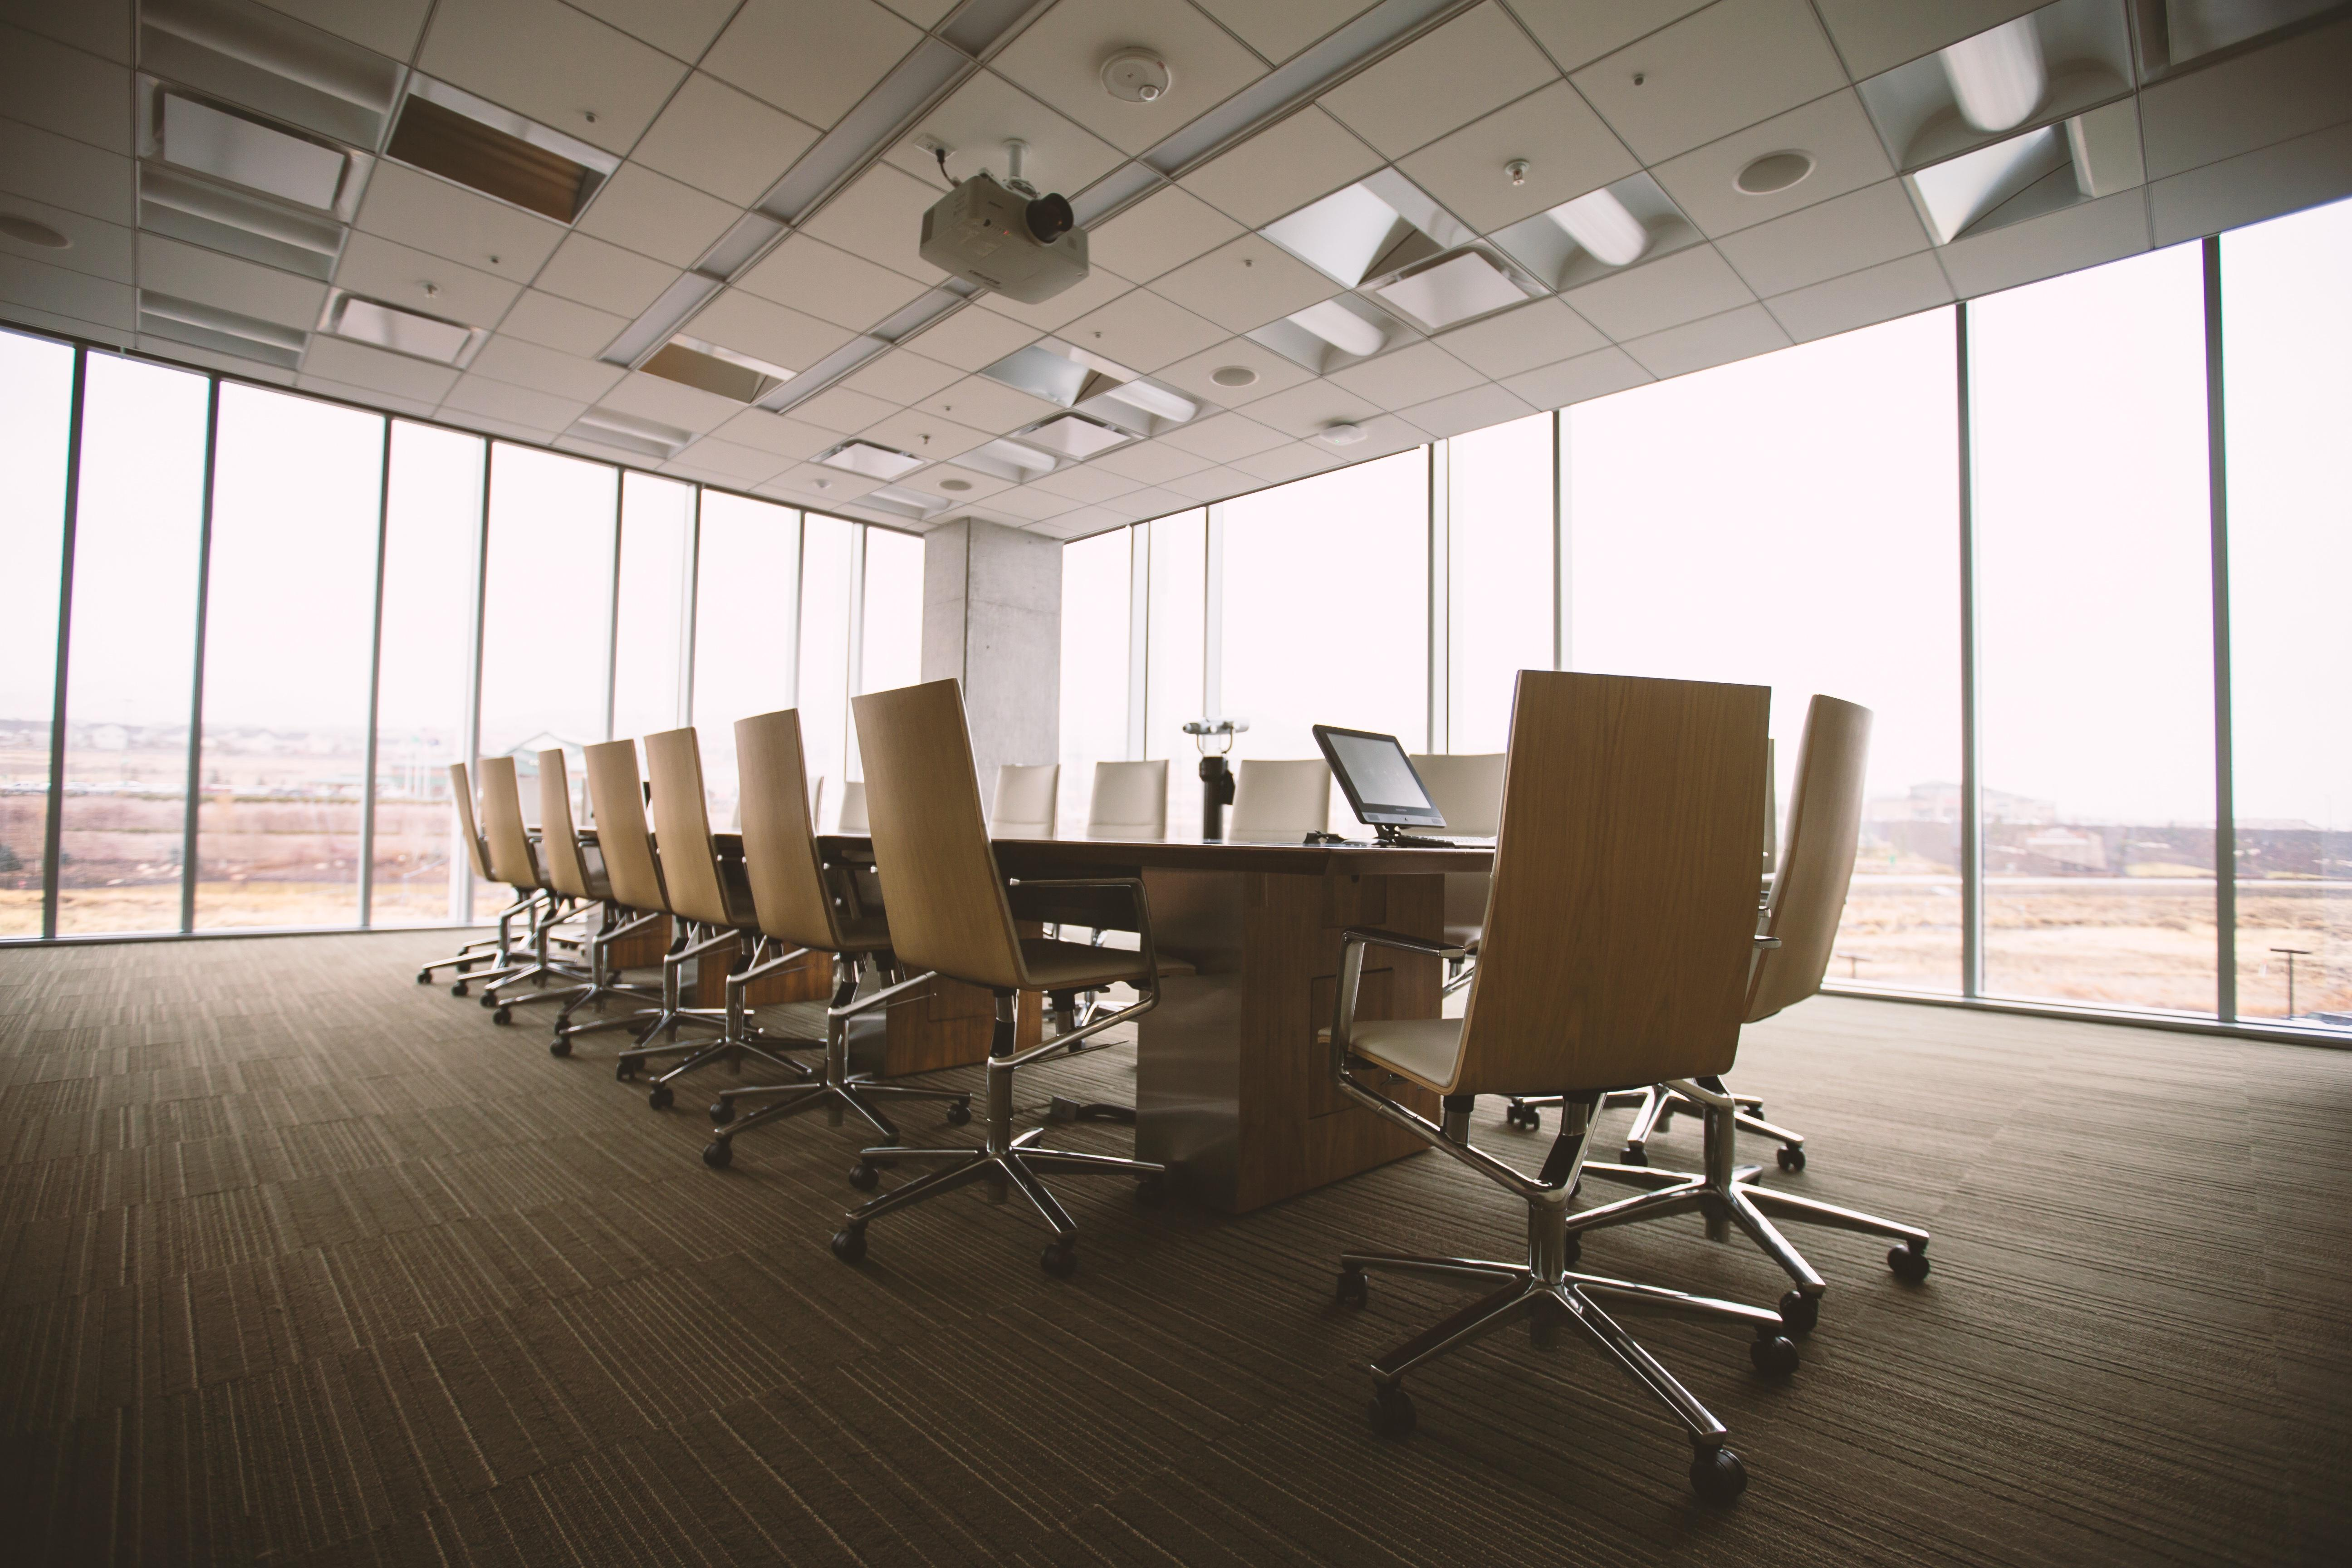 wide variety of office furniture chairs for your office furniture needs in Brisbane